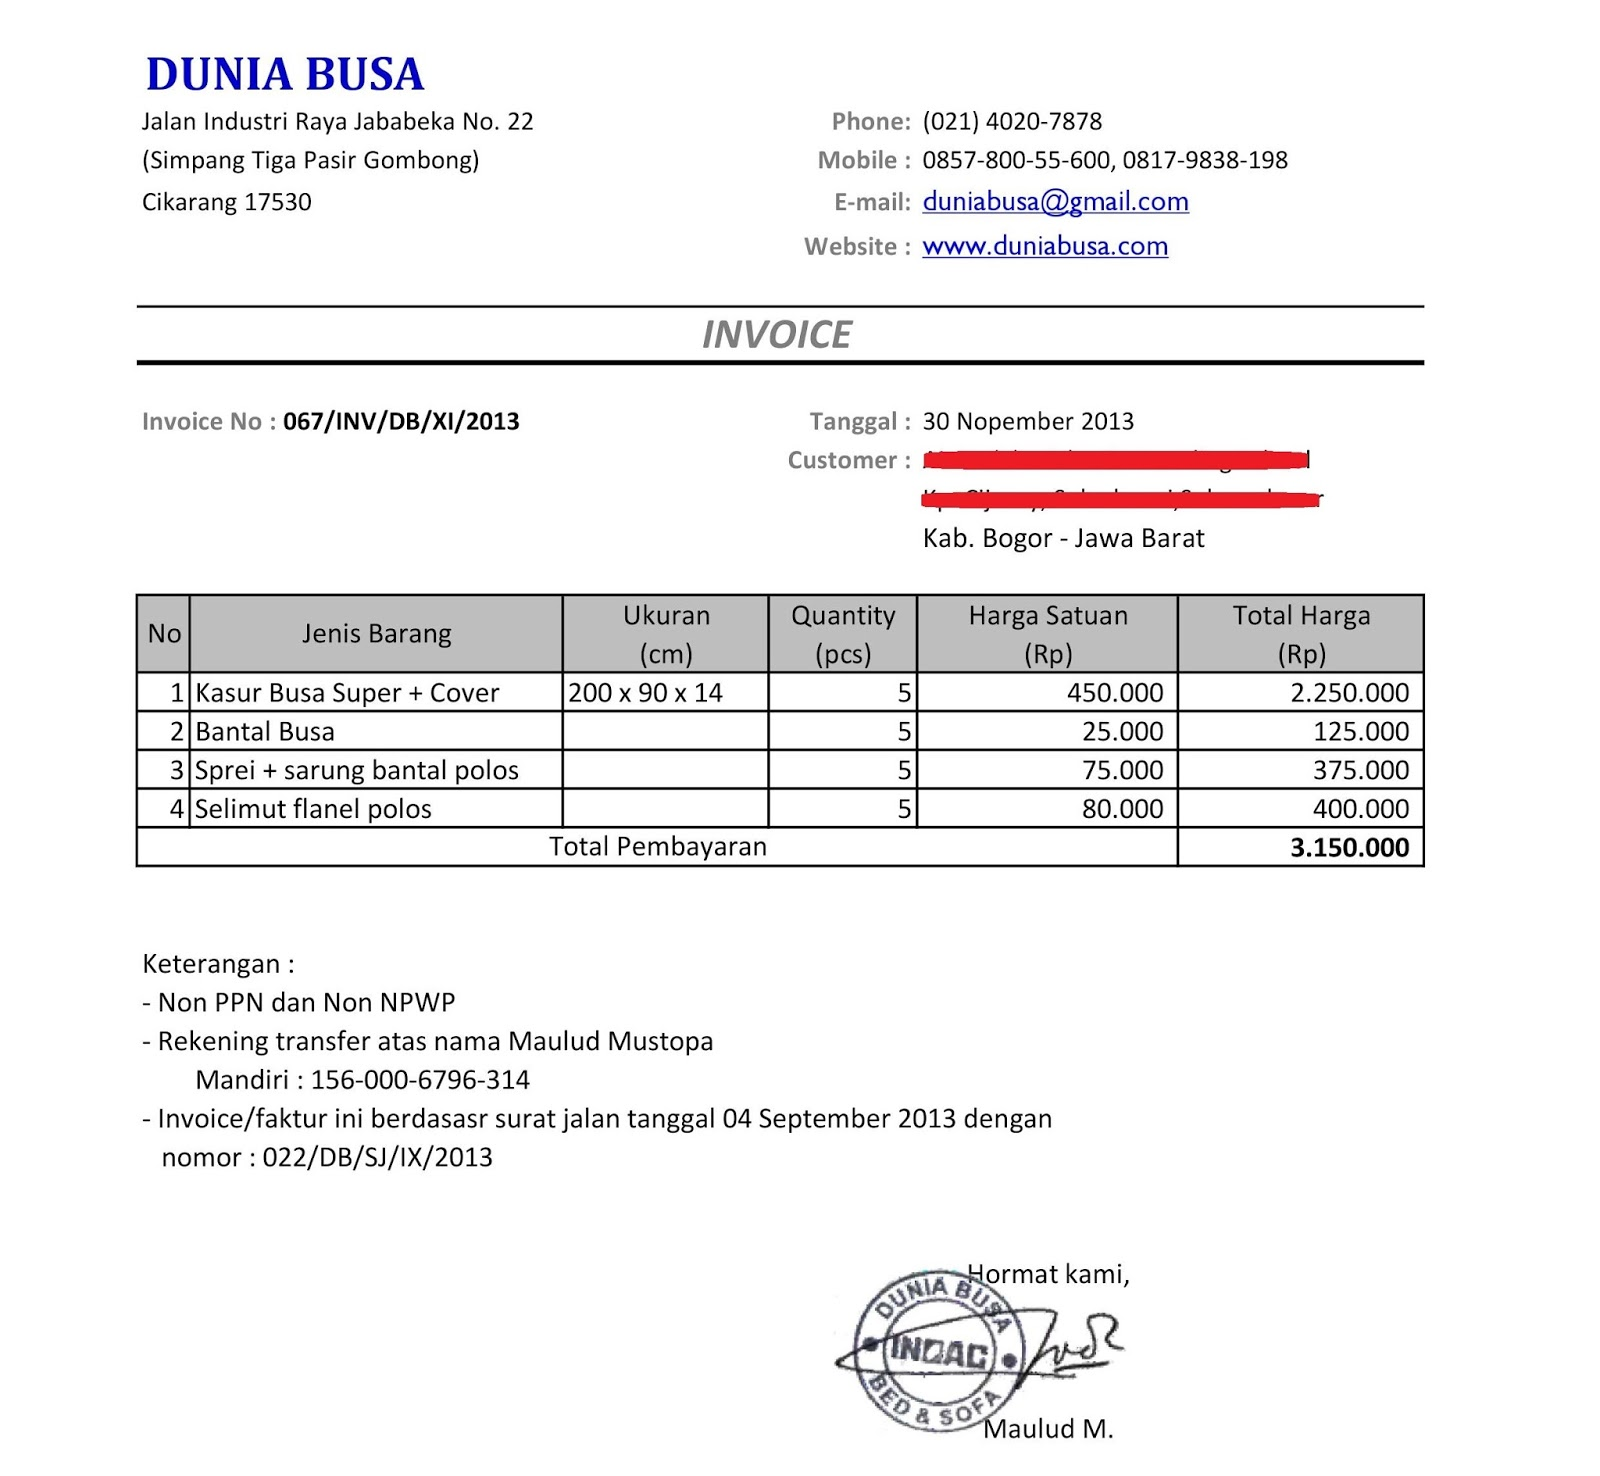 Garygrubbsus  Surprising Free Invoice Online  Create Invoice Online  Invoice Template  With Glamorous Contoh Format Invoice Atau Surat Tagihan  Brankas Arsip  Free Invoice Online With Enchanting Past Due Invoice Email Also How To Send Invoice On Paypal In Addition What Is Ebay Invoice And Edmunds Invoice Price As Well As Contractor Invoice Additionally Car Invoice Price From Sklepco With Garygrubbsus  Glamorous Free Invoice Online  Create Invoice Online  Invoice Template  With Enchanting Contoh Format Invoice Atau Surat Tagihan  Brankas Arsip  Free Invoice Online And Surprising Past Due Invoice Email Also How To Send Invoice On Paypal In Addition What Is Ebay Invoice From Sklepco